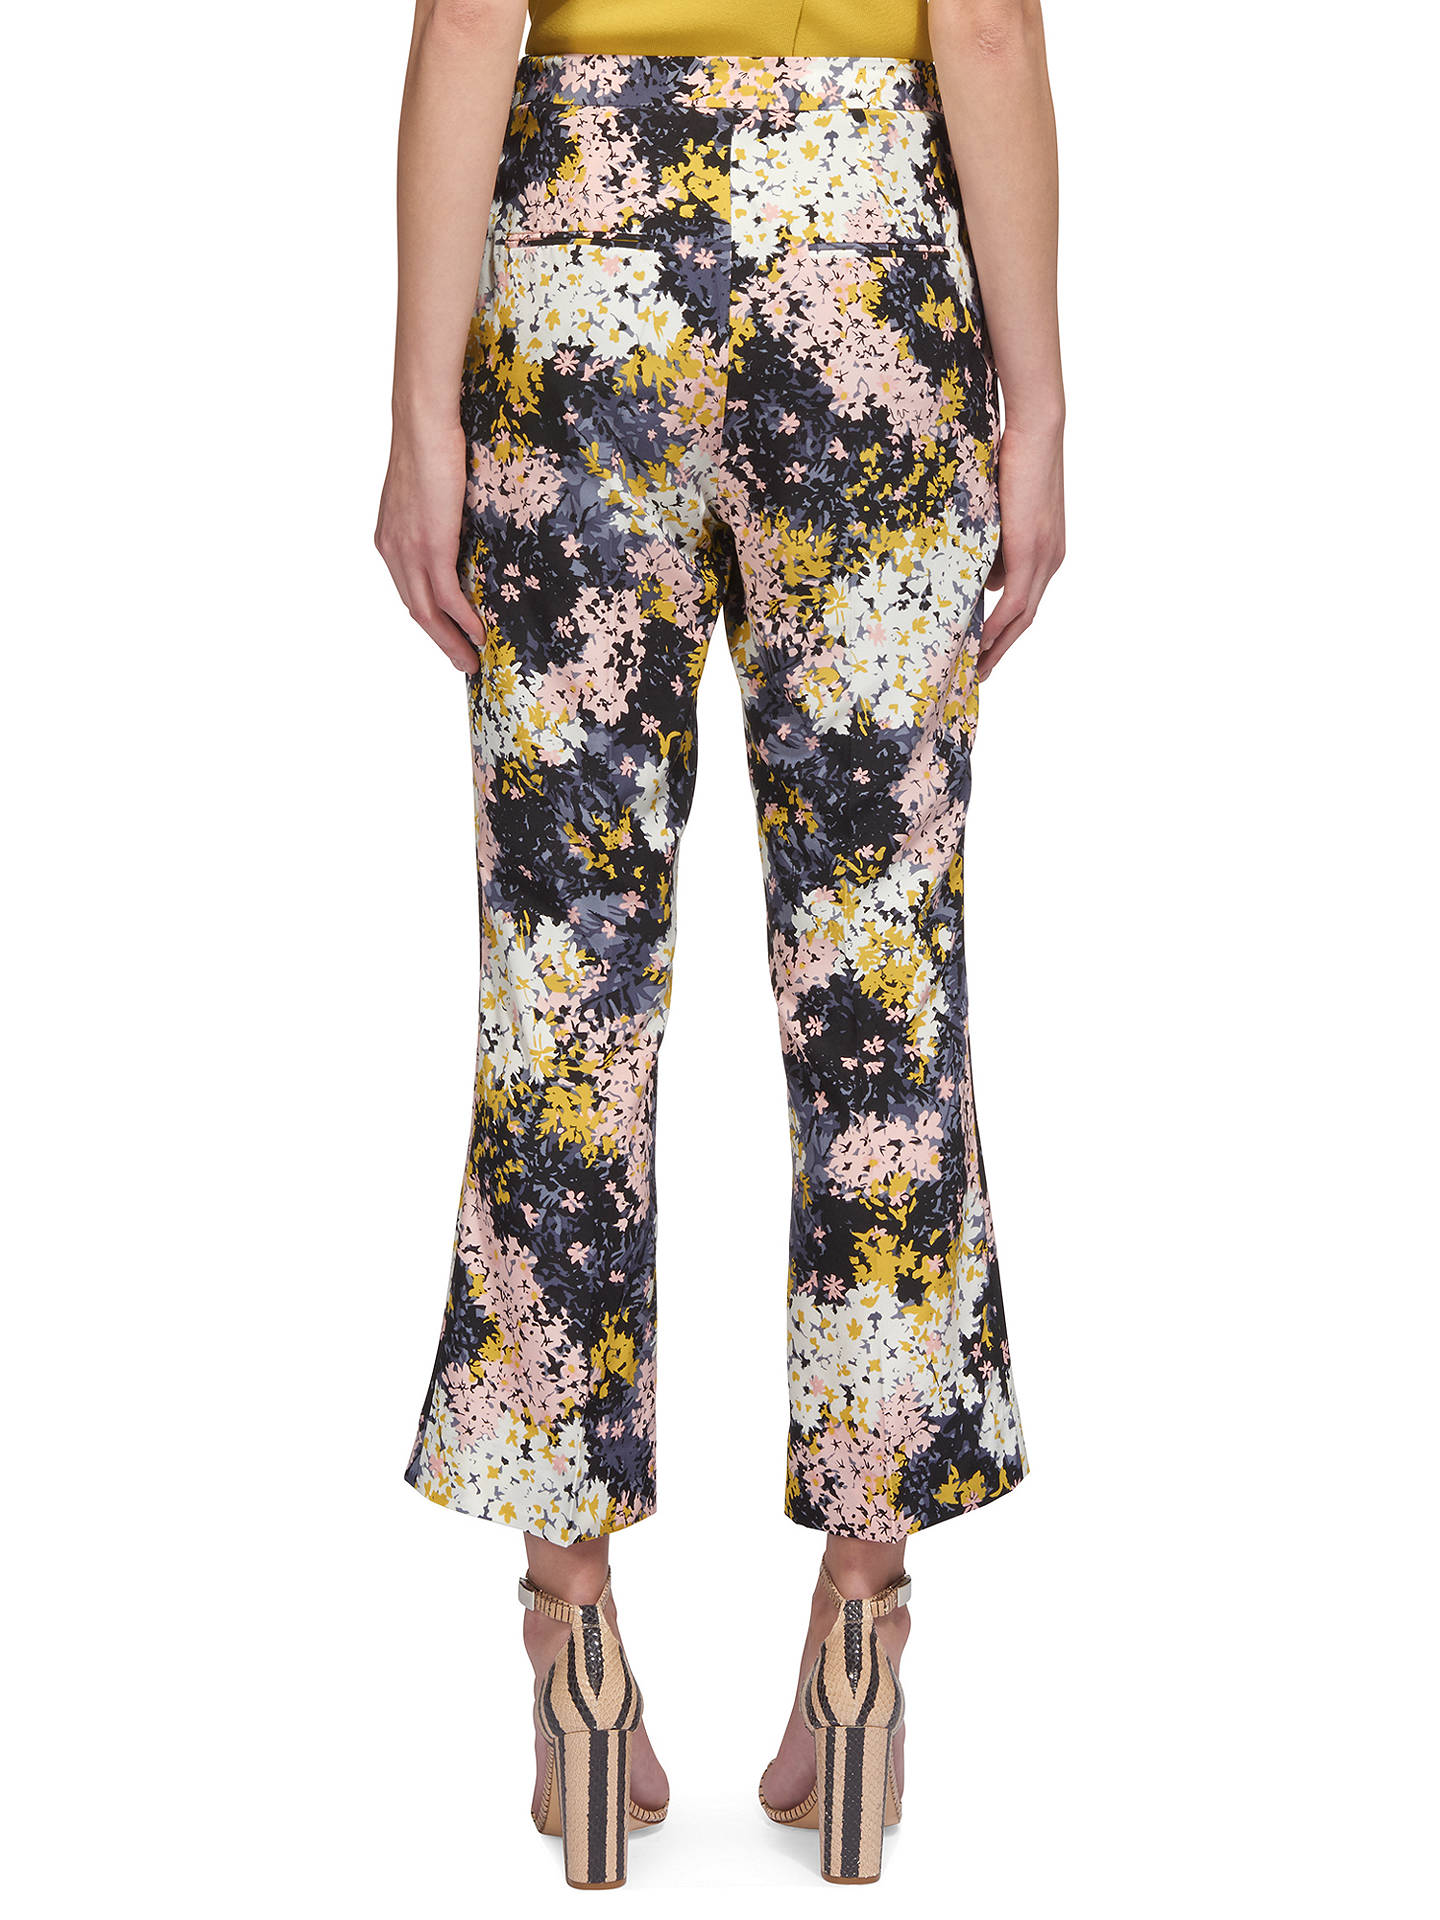 BuyWhistles Wild Floral Selby Trousers, Multicolour, 6 Online at johnlewis.com